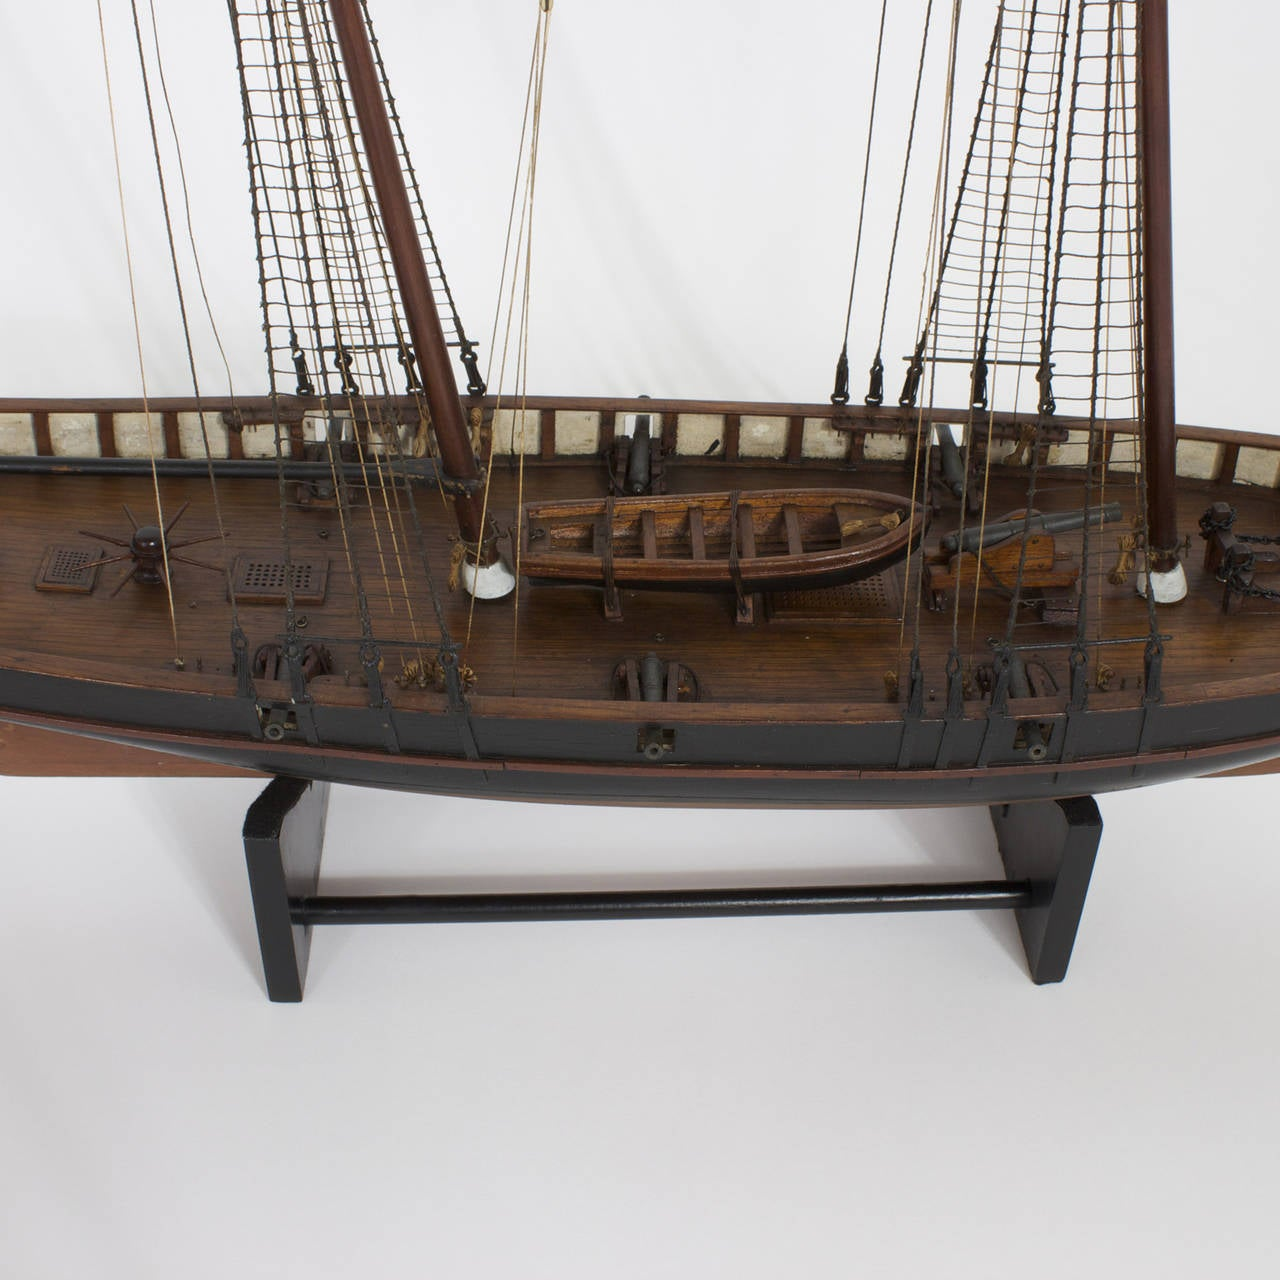 Mahogany schooner ship or boat model for sale at stdibs